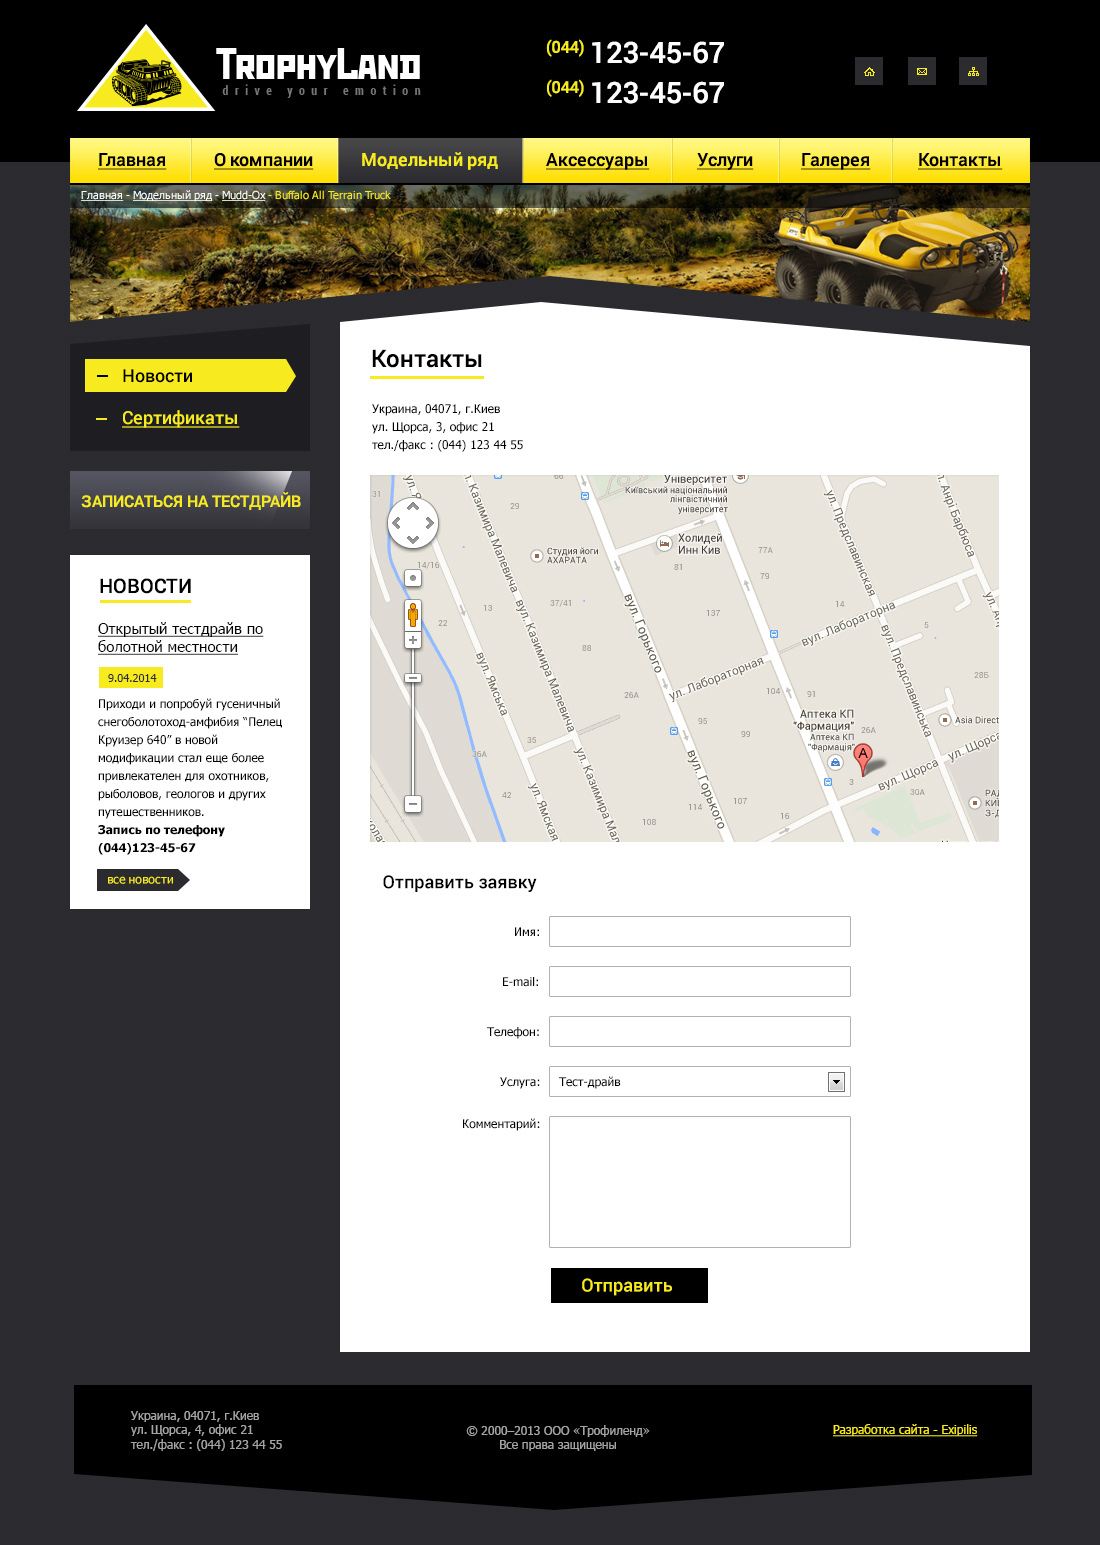 Contact page design of TrophyLand website